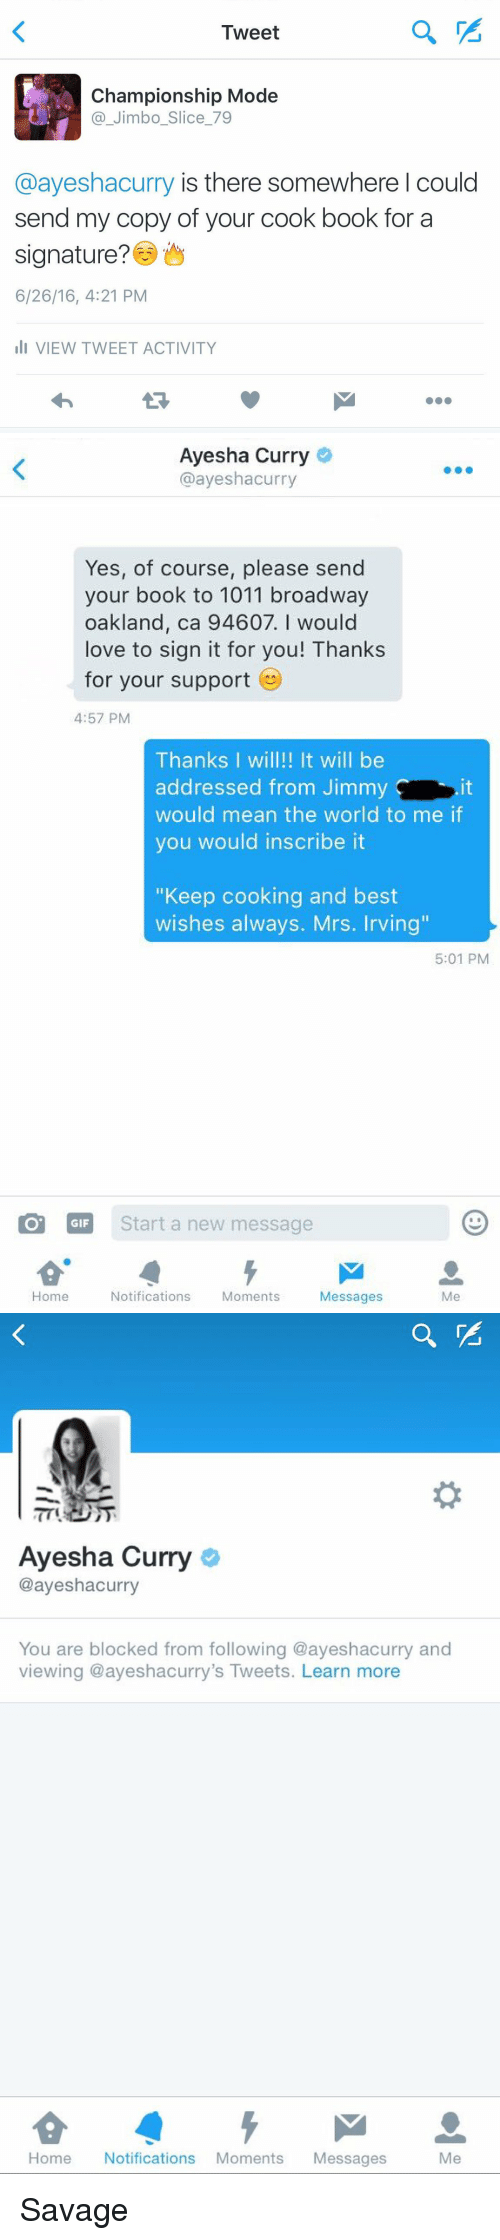 """Ayesha Curry: Tweet  Championship Mode  Jimbo Slice 79  @ayeshacurry is there somewhere I could  send my copy of your cook book for a  signature?  6/26/16, 4:21 PM  III VIEW TWEET ACTIVITY   Ayesha Curry  @ayesha curry  Yes, of course, please send  your book to 1011 broadway  oakland, ca 94607. I would  love to sign it for you! Thanks  for your support  4:57 PM  Thanks I will!! It will be  addressed from Jimmy  would mean the world to me if  you would inscribe it  """"Keep cooking and best  wishes always. Mrs. Irving""""  5:01 PM  GIF  Start a new message  Home  Notifications  Moments  Messages   Ayesha Curry  @ayeshacurry  You are blocked from following @ayeshacurry and  viewing ayeshacurry's Tweets. Learn more  Home Notifications Moments  Messages  Me Savage"""